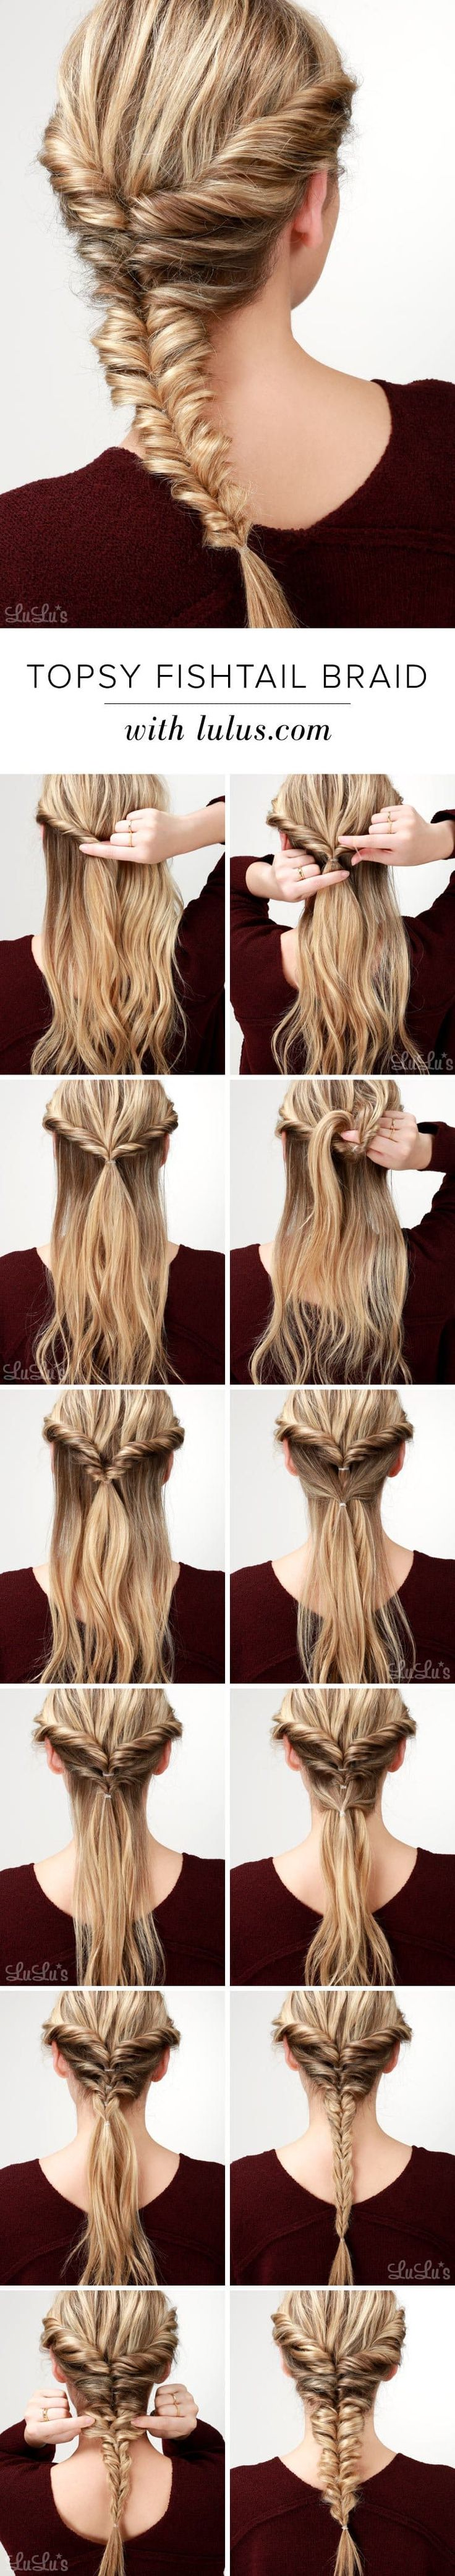 10 Simple And Easy Lazy Girl Hairstyle Tips That Are Done In Less Time